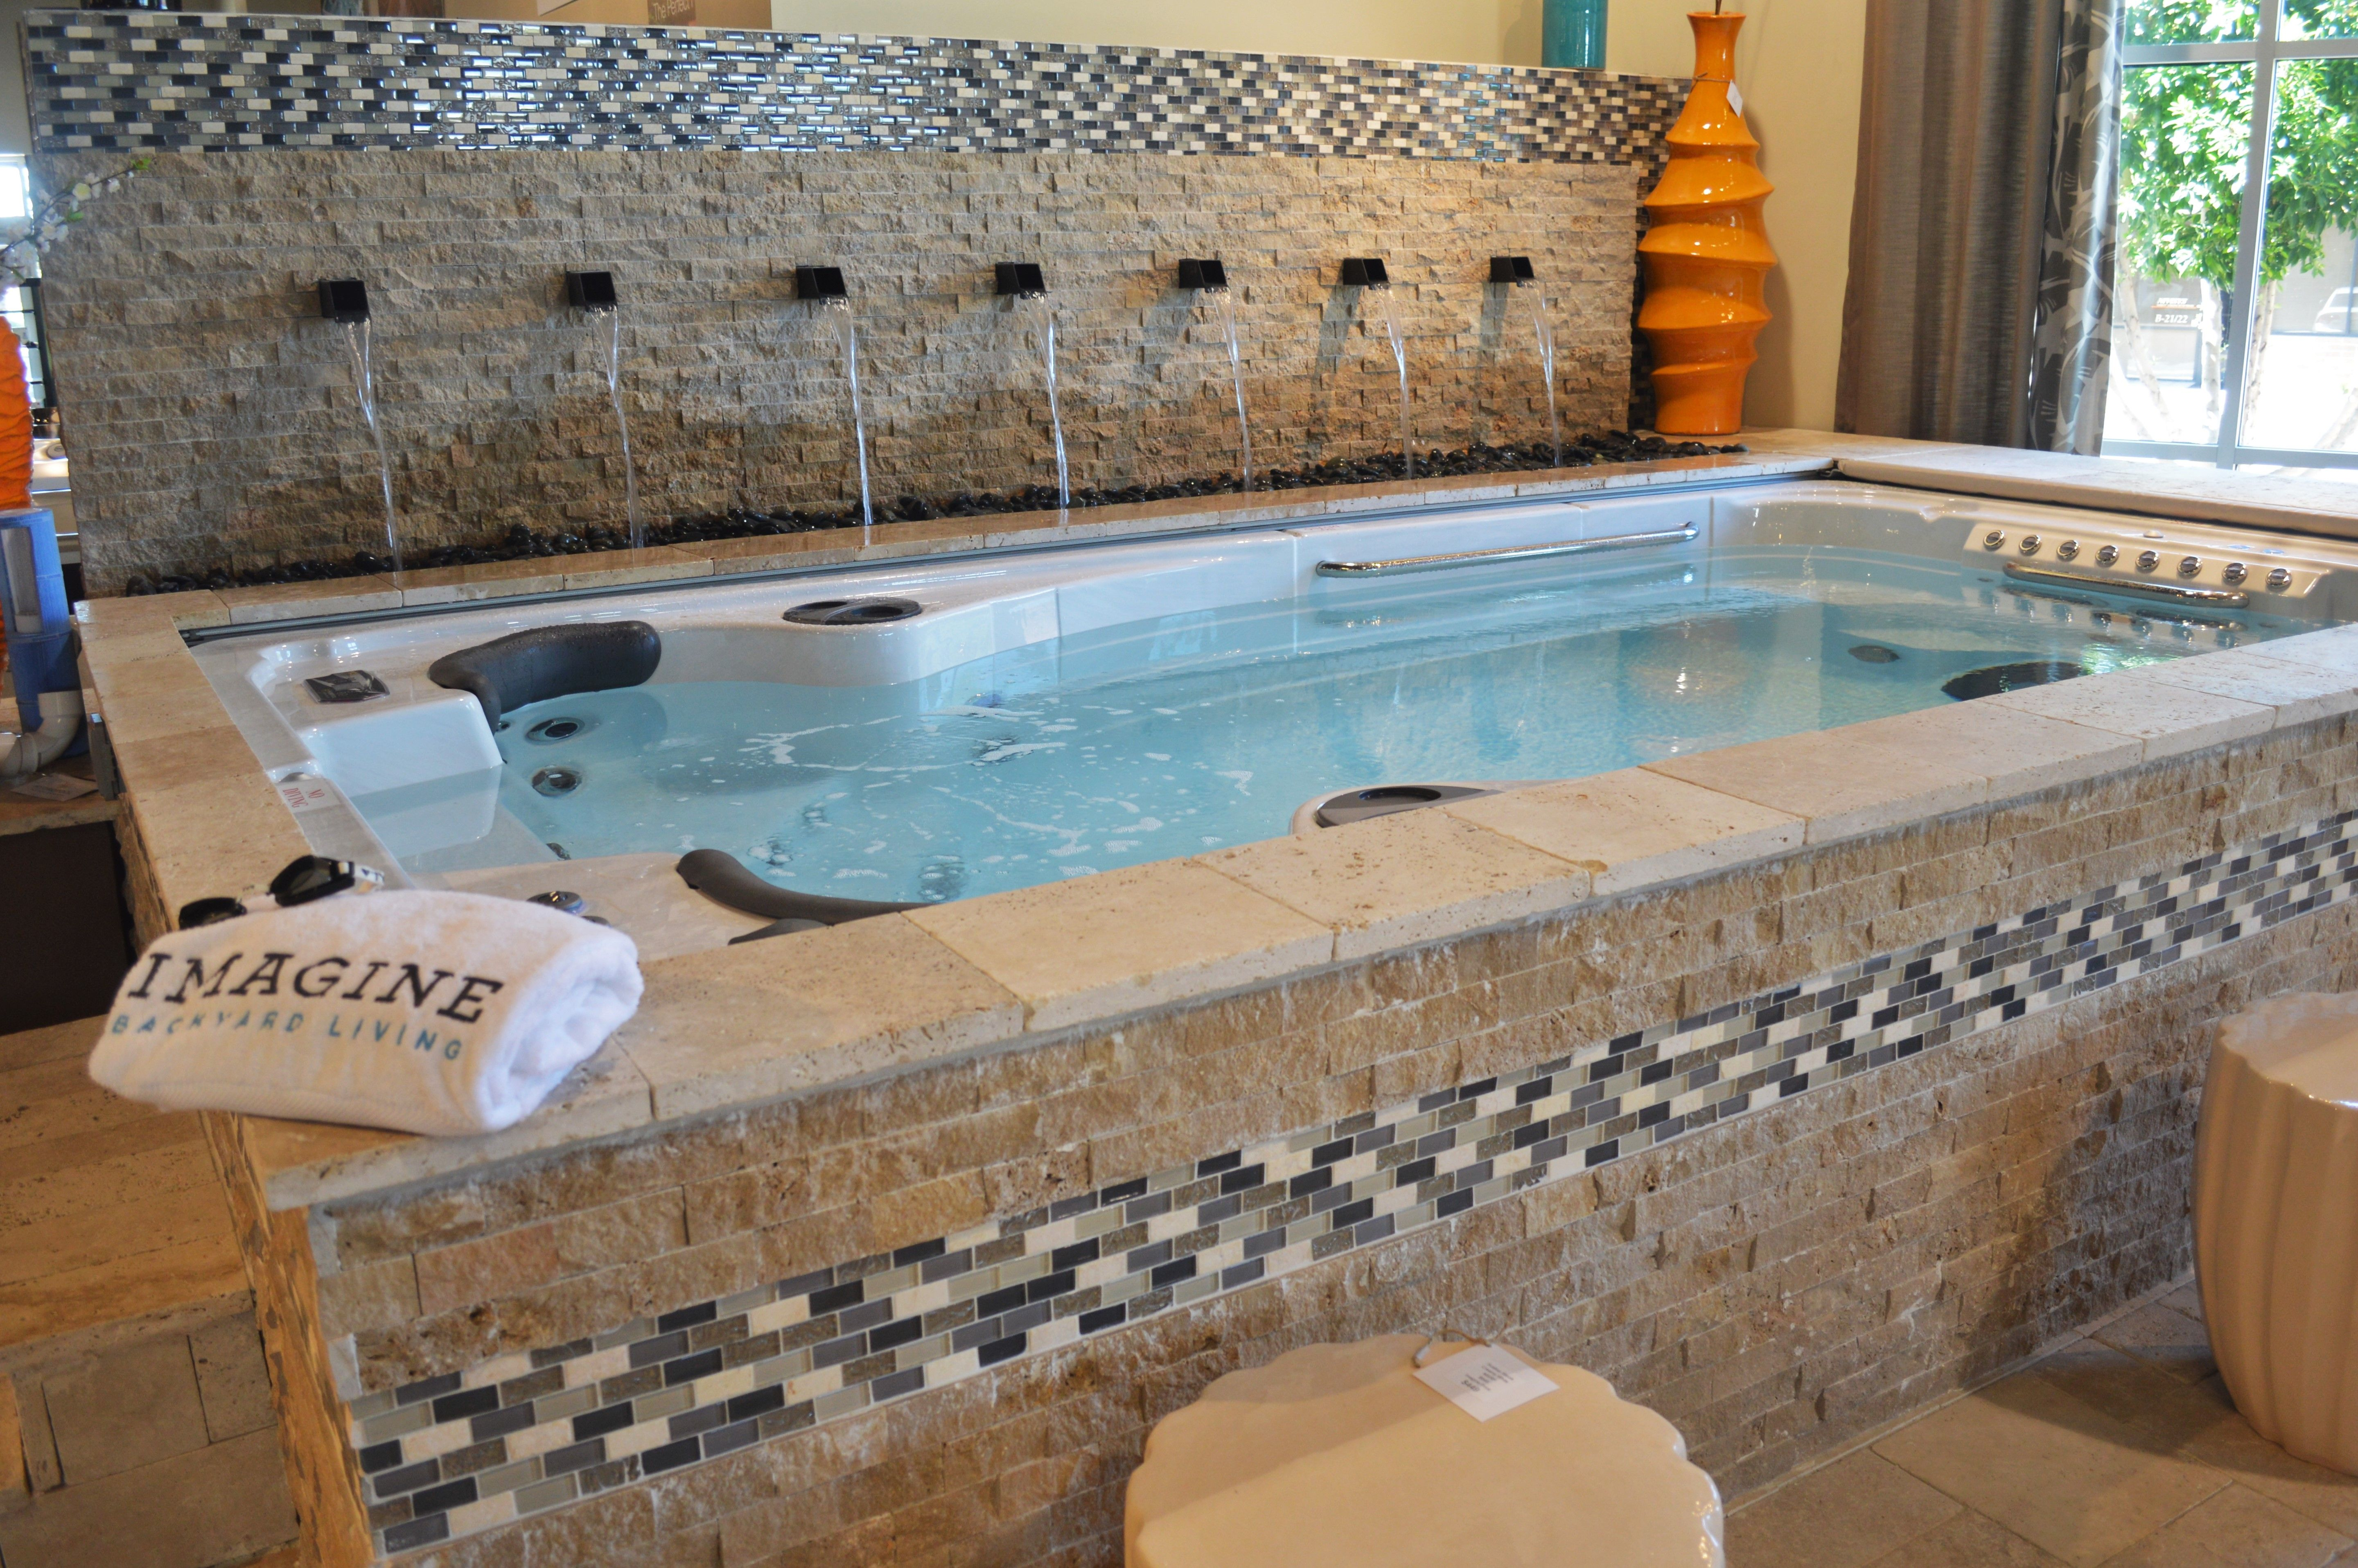 Imagine getting 20 minutes of exercise every morning or evening, then swimming over to the therapy jets for a quick massage in the therapy jets! It's the best way to start or end your day. Imagine Backyard Living sourced the finest and only self cleaning swim spa on the market and is the exclusive dealer in the Valley for HydroPool®. Stop by and see one in action and feel free to give it a try. Come as you are-we have towels and swim suits here!